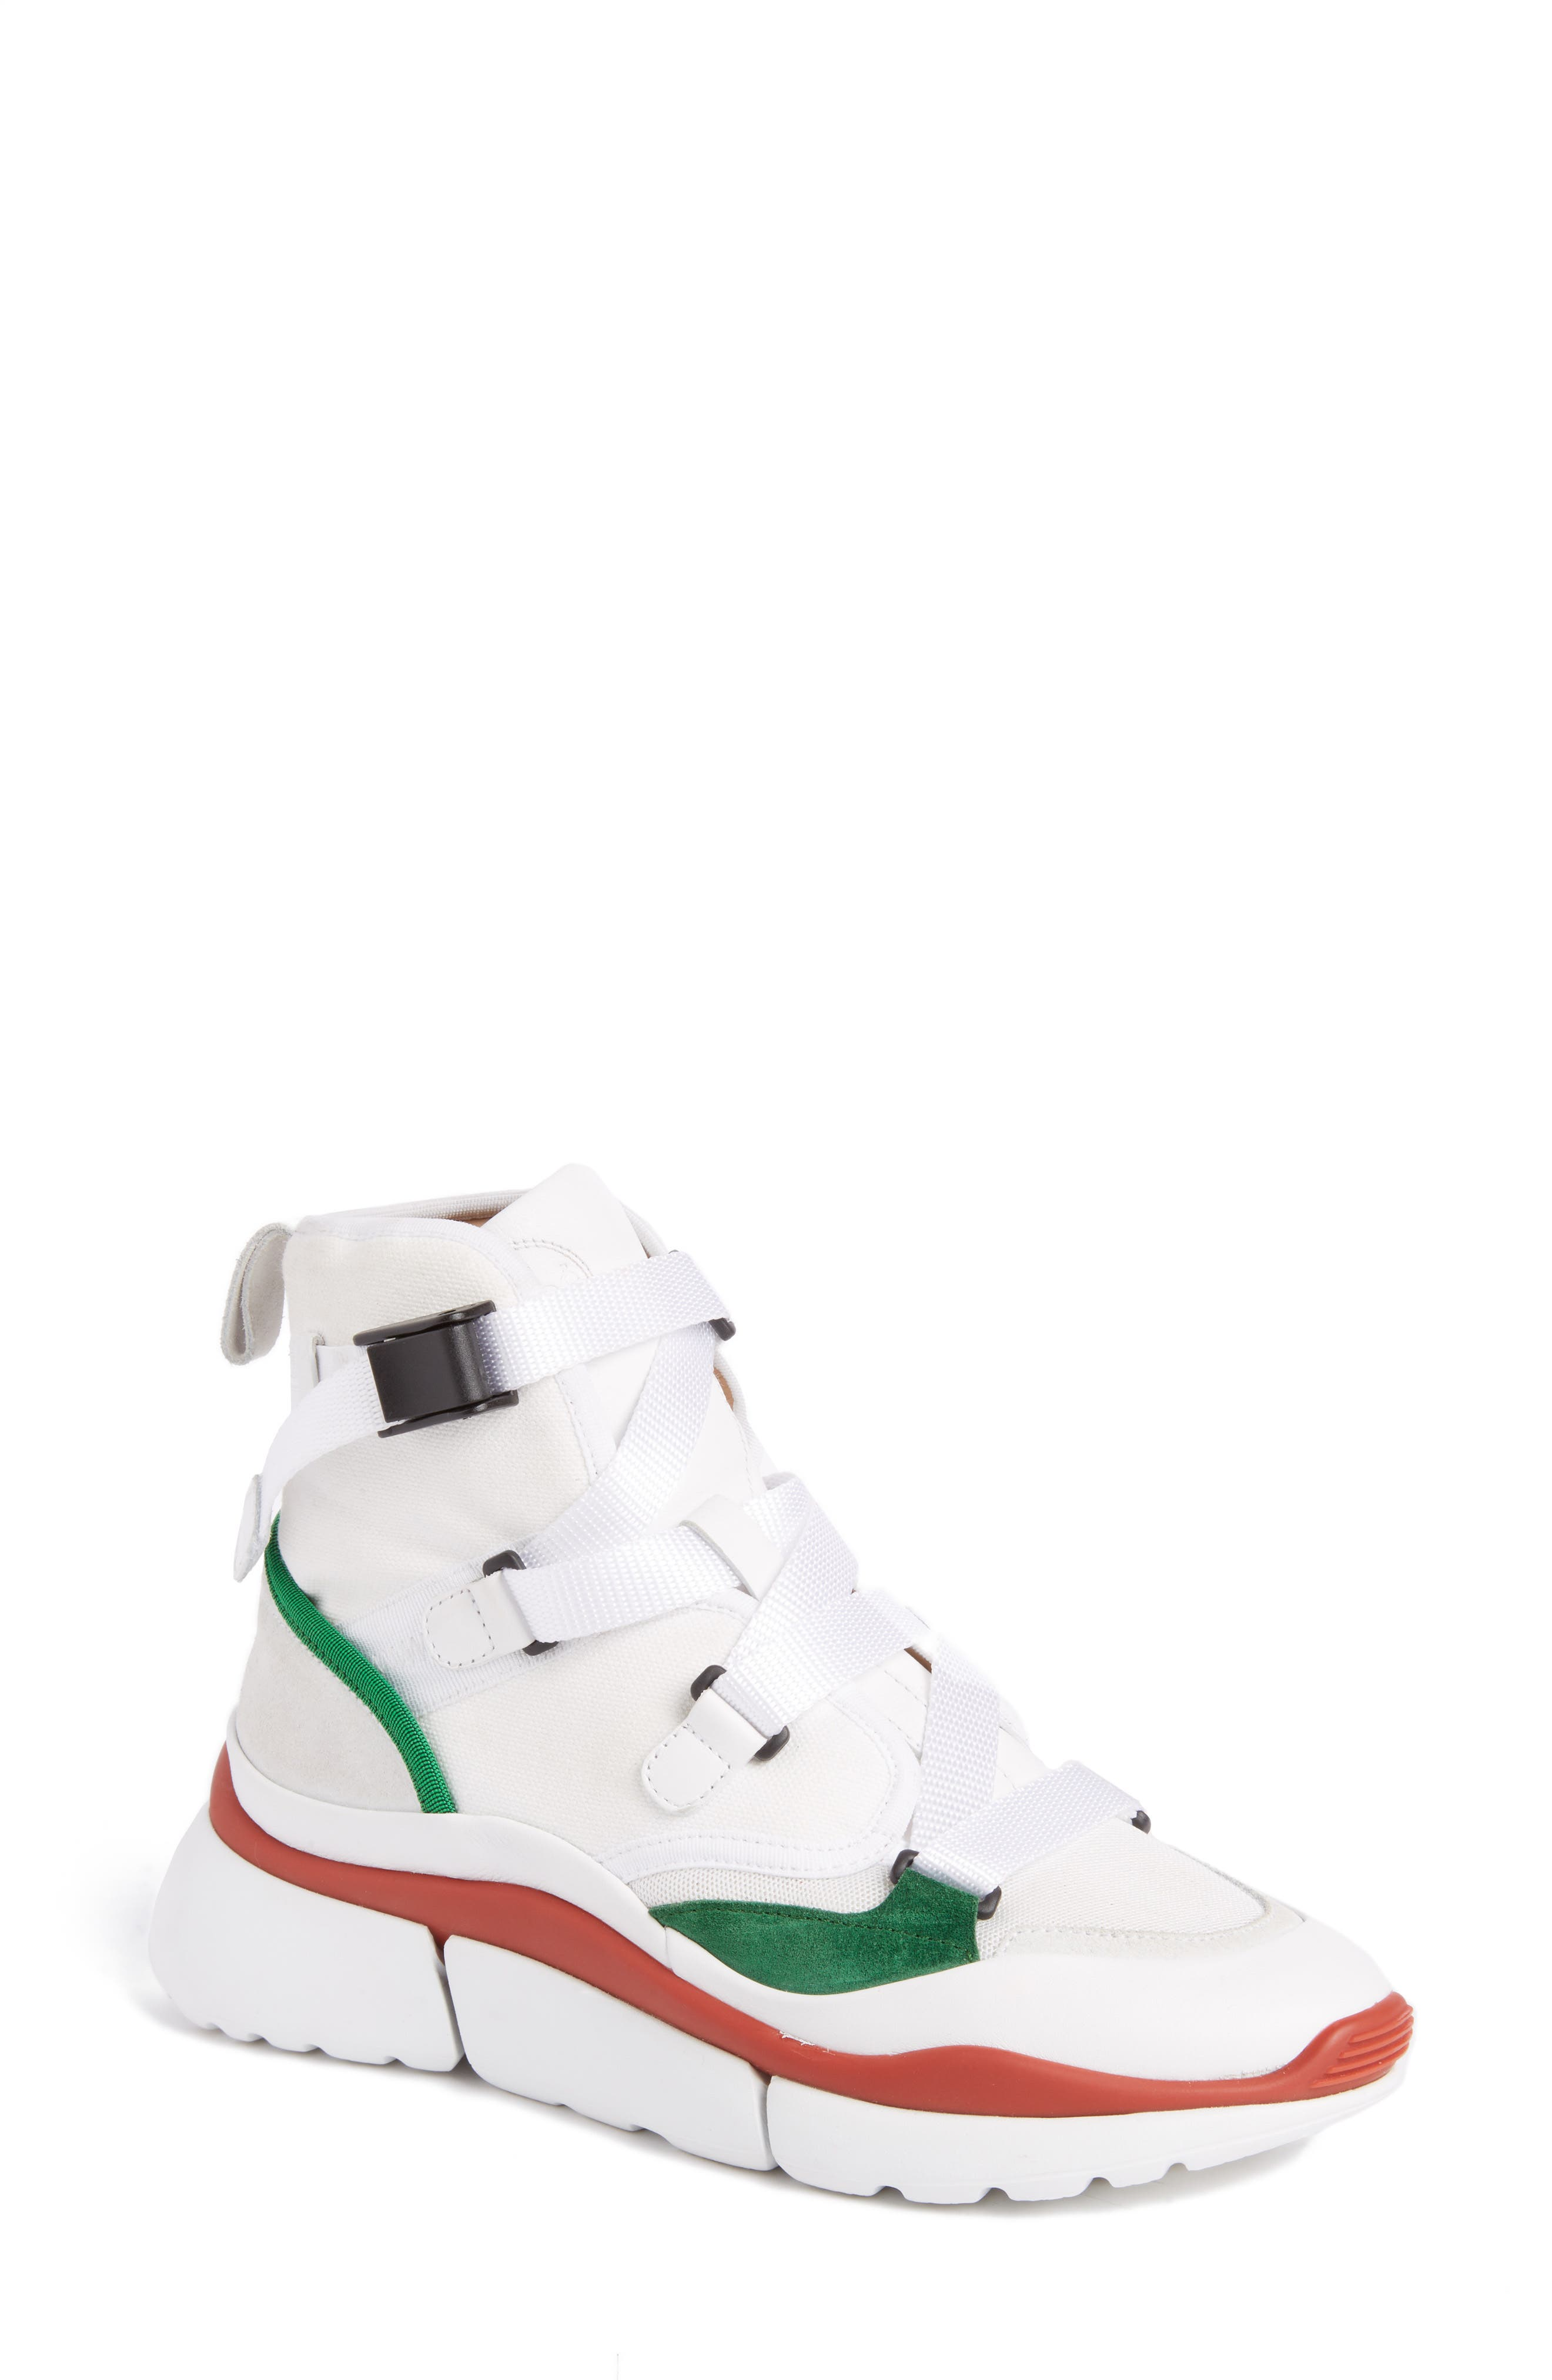 Chloe Sonnie High Top Sneaker, White